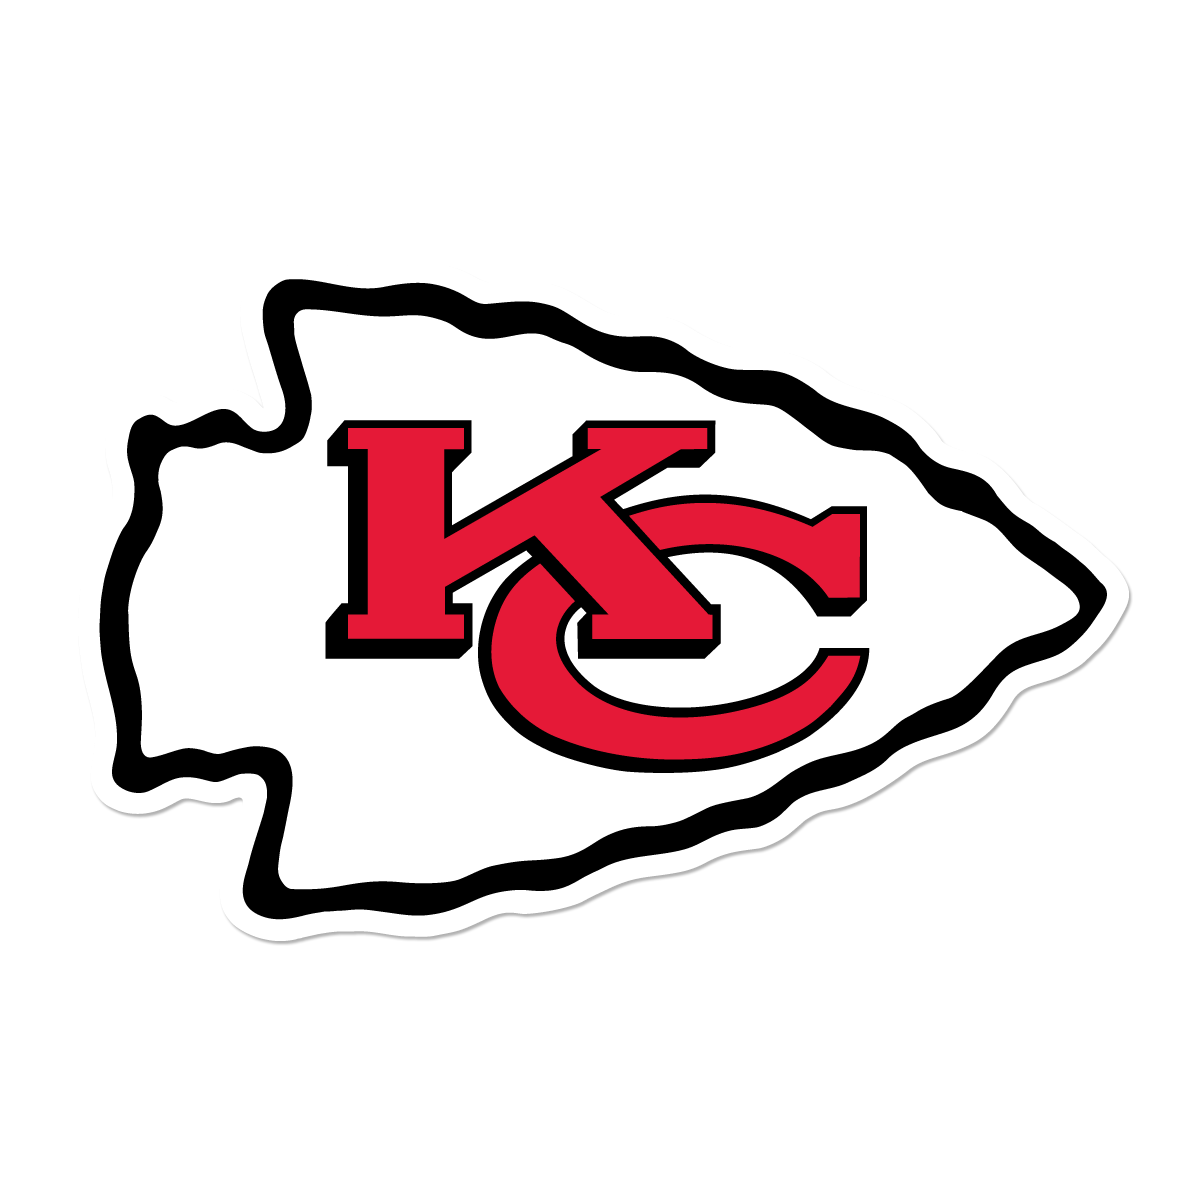 Newest #Jobs Posted: Social Media Manager - @chiefs (KANSAS CITY, MO) https://t.co/FZNaludnz7 https://t.co/opNh5jbicx